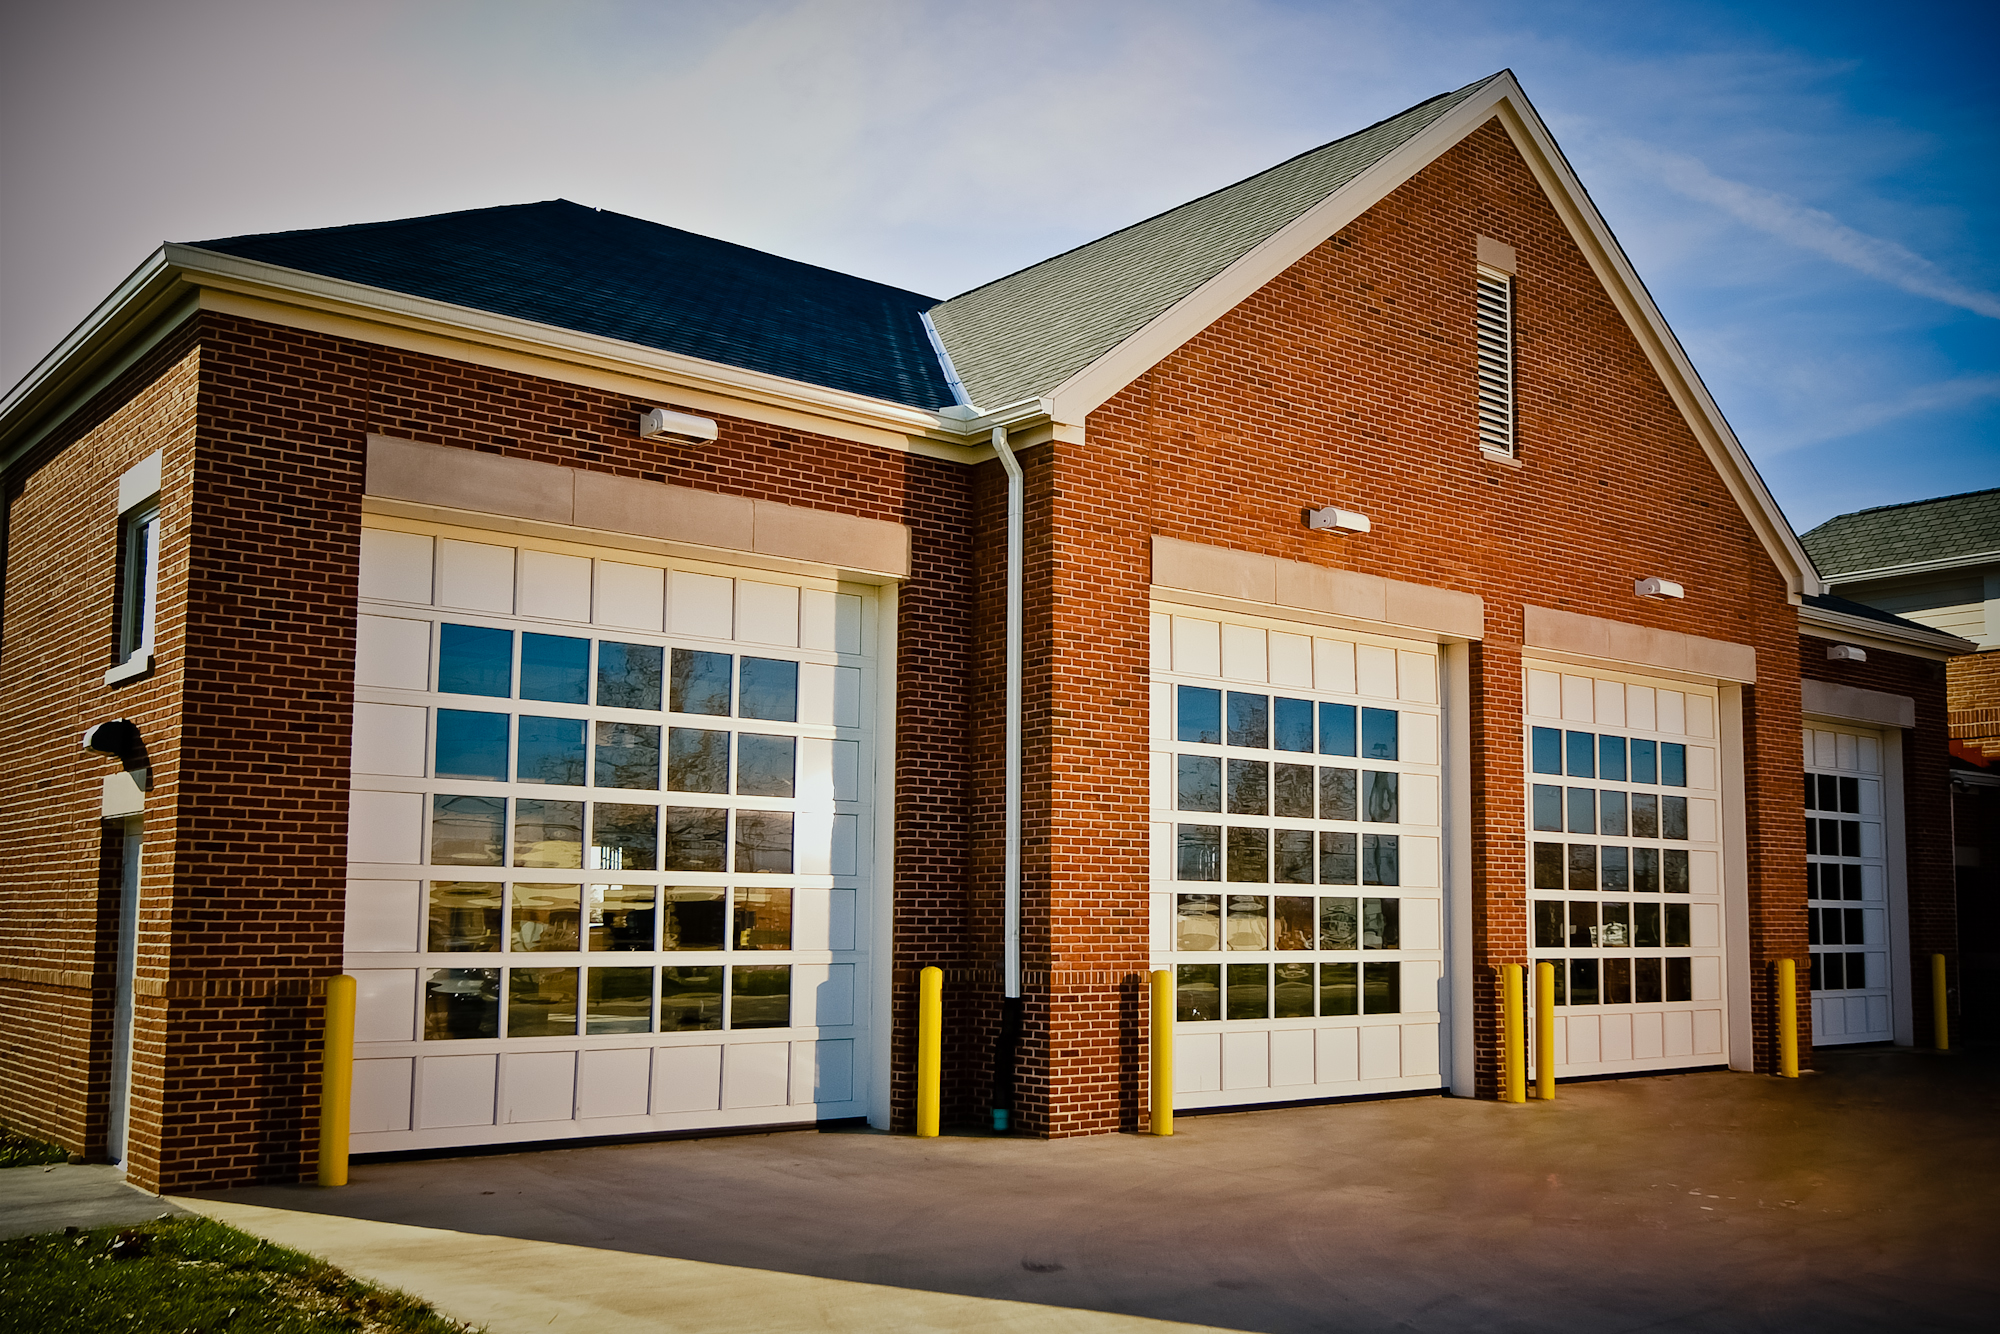 1334 #A55E26 Gfx/products/000117/ DSF0183 Edit.jpg pic Residential Garage Doors Direct 38212000